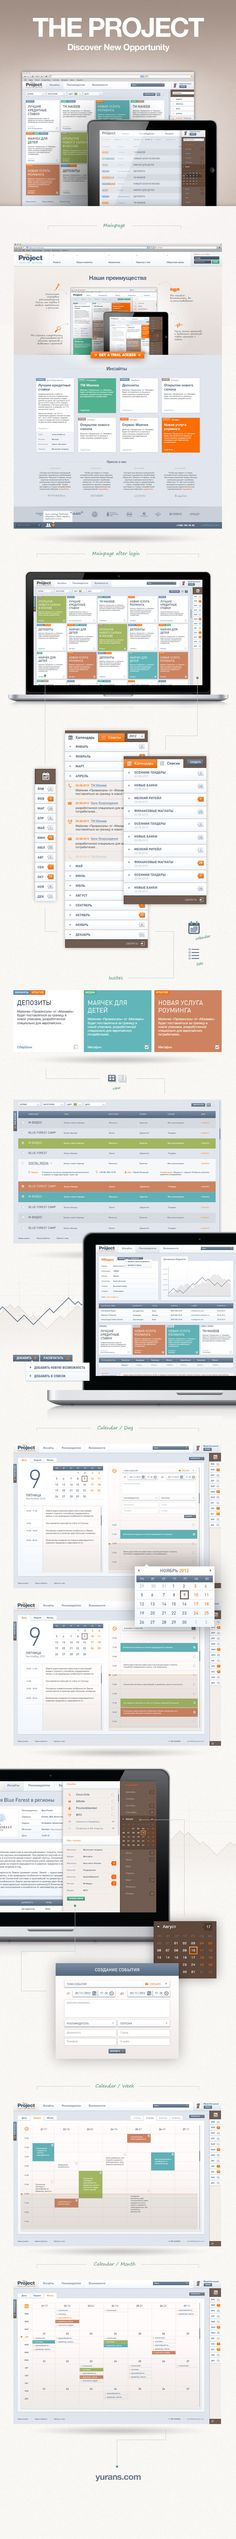 Web interface design for advertising research system by Yuriy Nagorniy